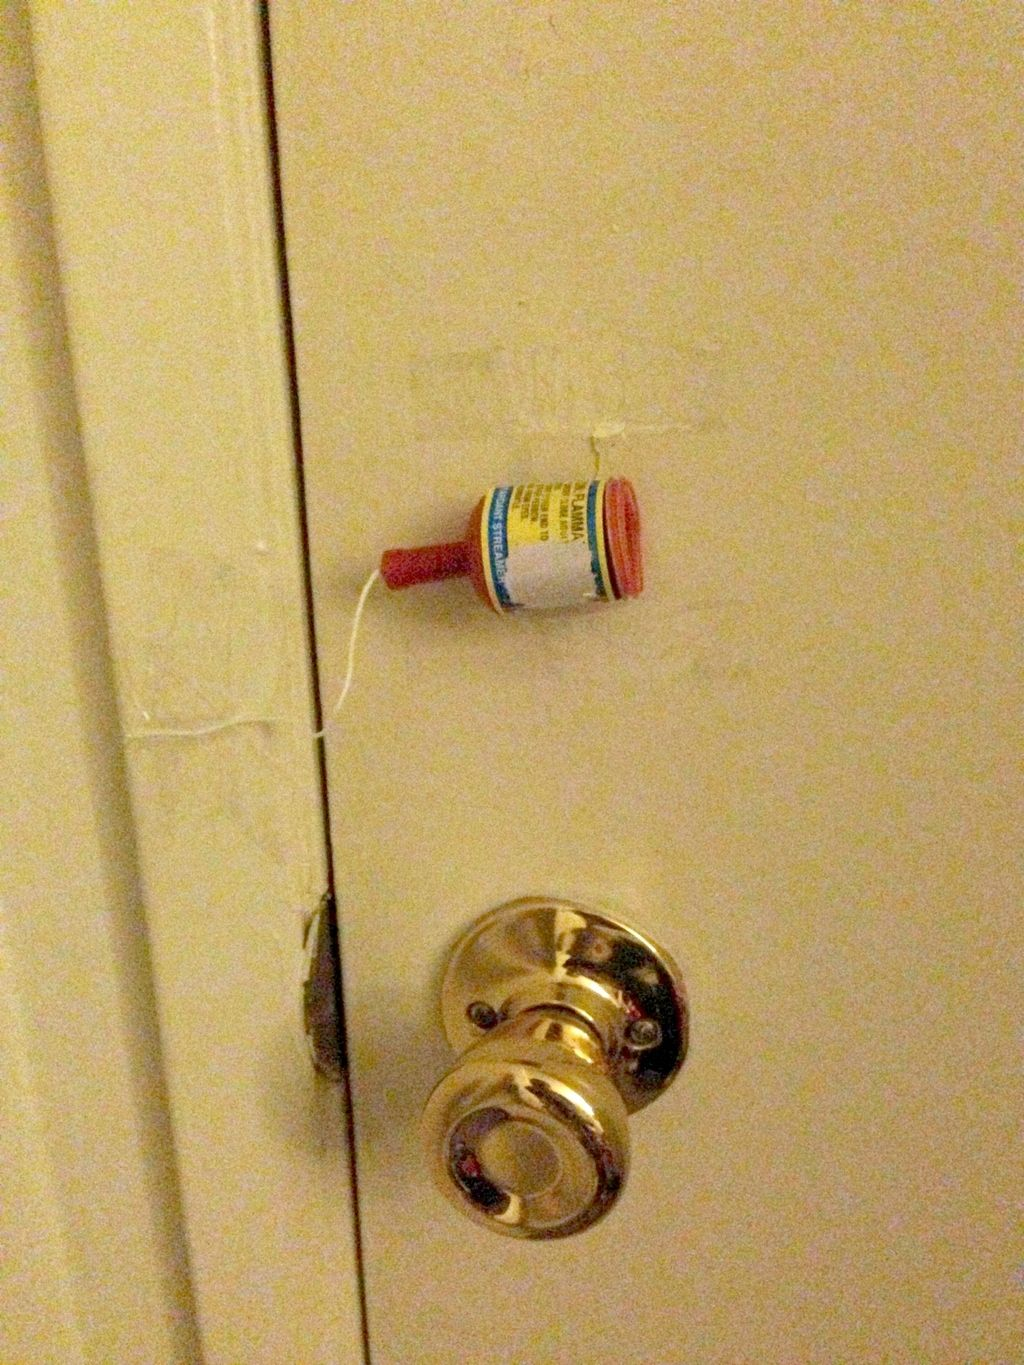 Awesome April Fools Day Pranks Your Kids Will Totally Fall For - 53 hilarious april fools pranks took game another level 6 just brilliant